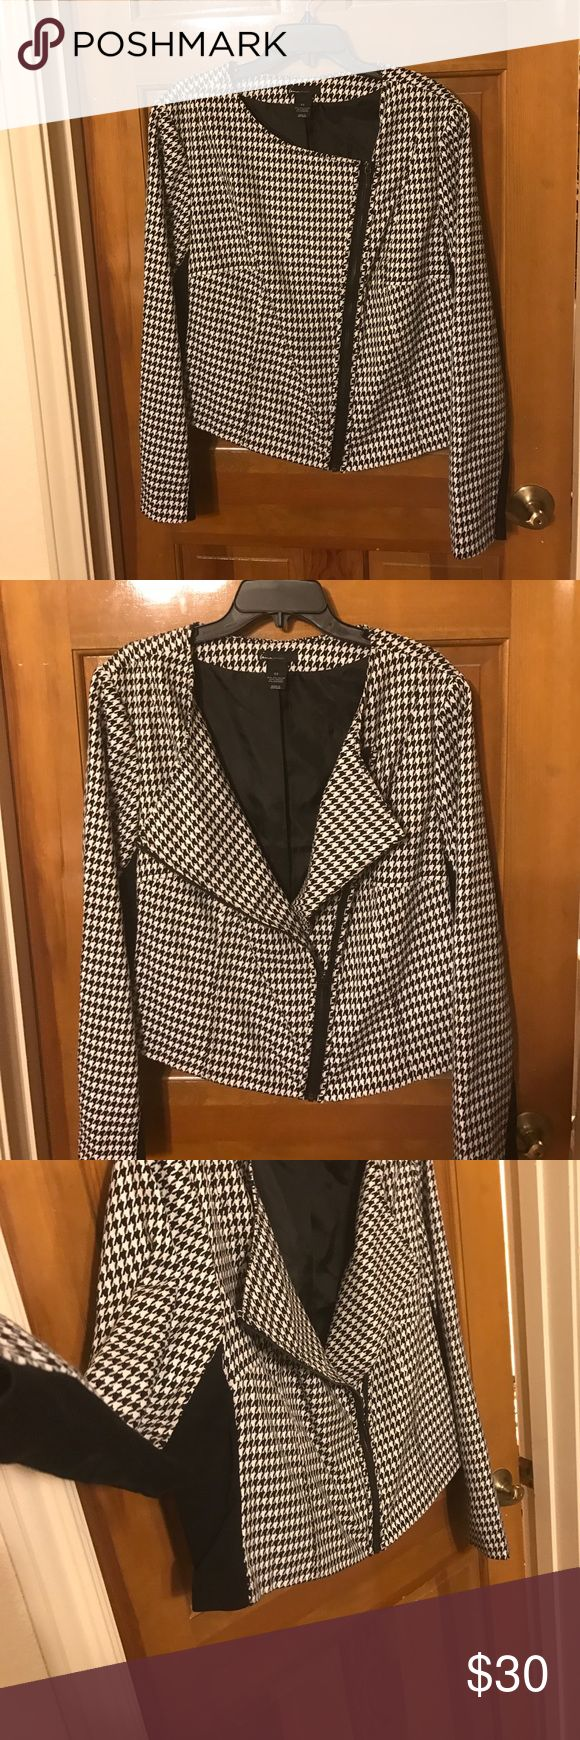 Houndstooth jacket Cute houndstooth jacket! Perfect for business casual outfit. Lane Bryant Jackets & Coats Blazers